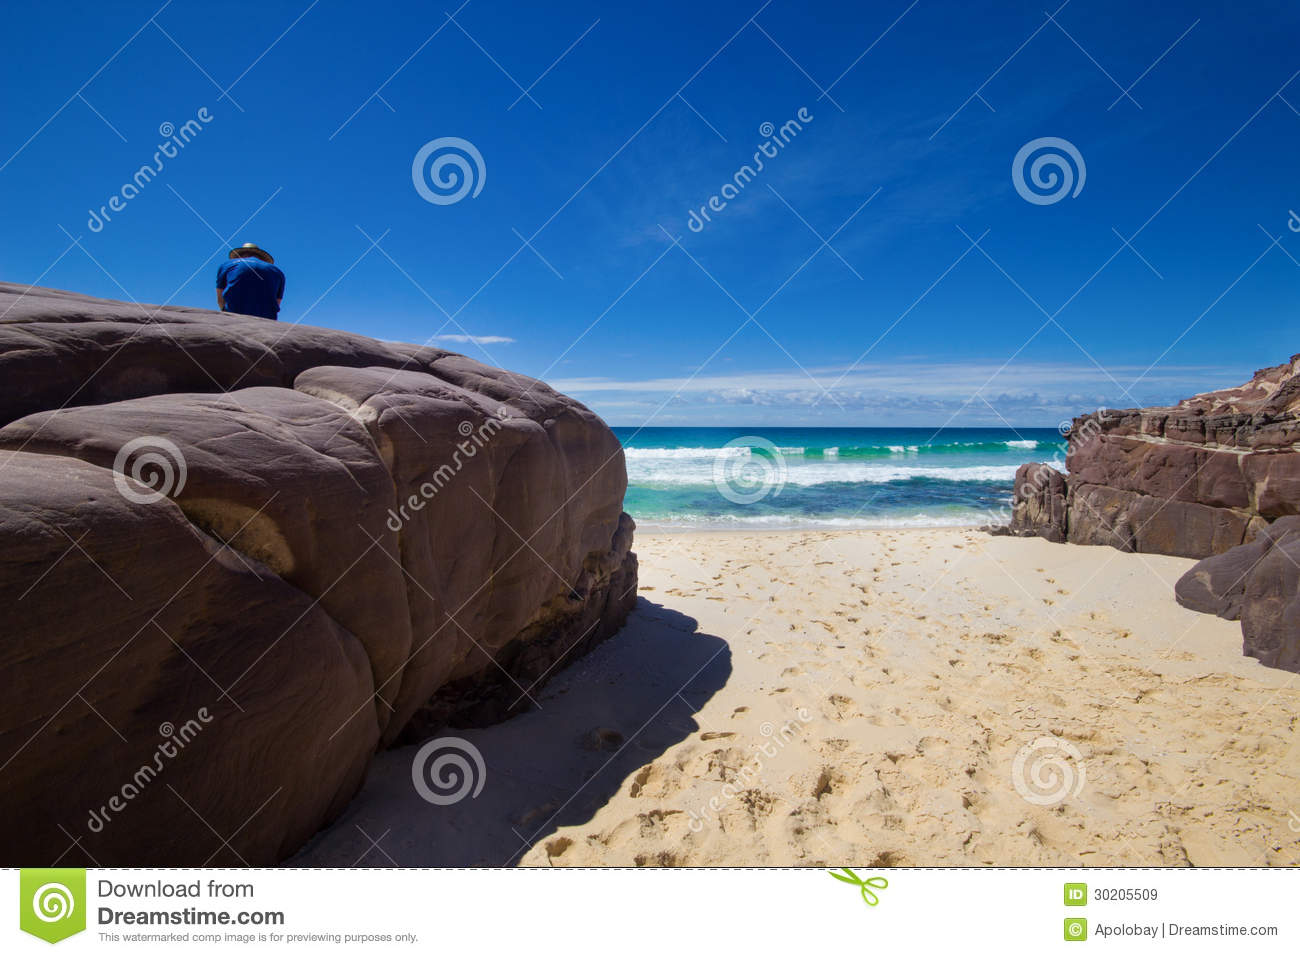 Tourist with backpacks on a large stone and enjoying Sea View. Ben Boyd national park, Australia